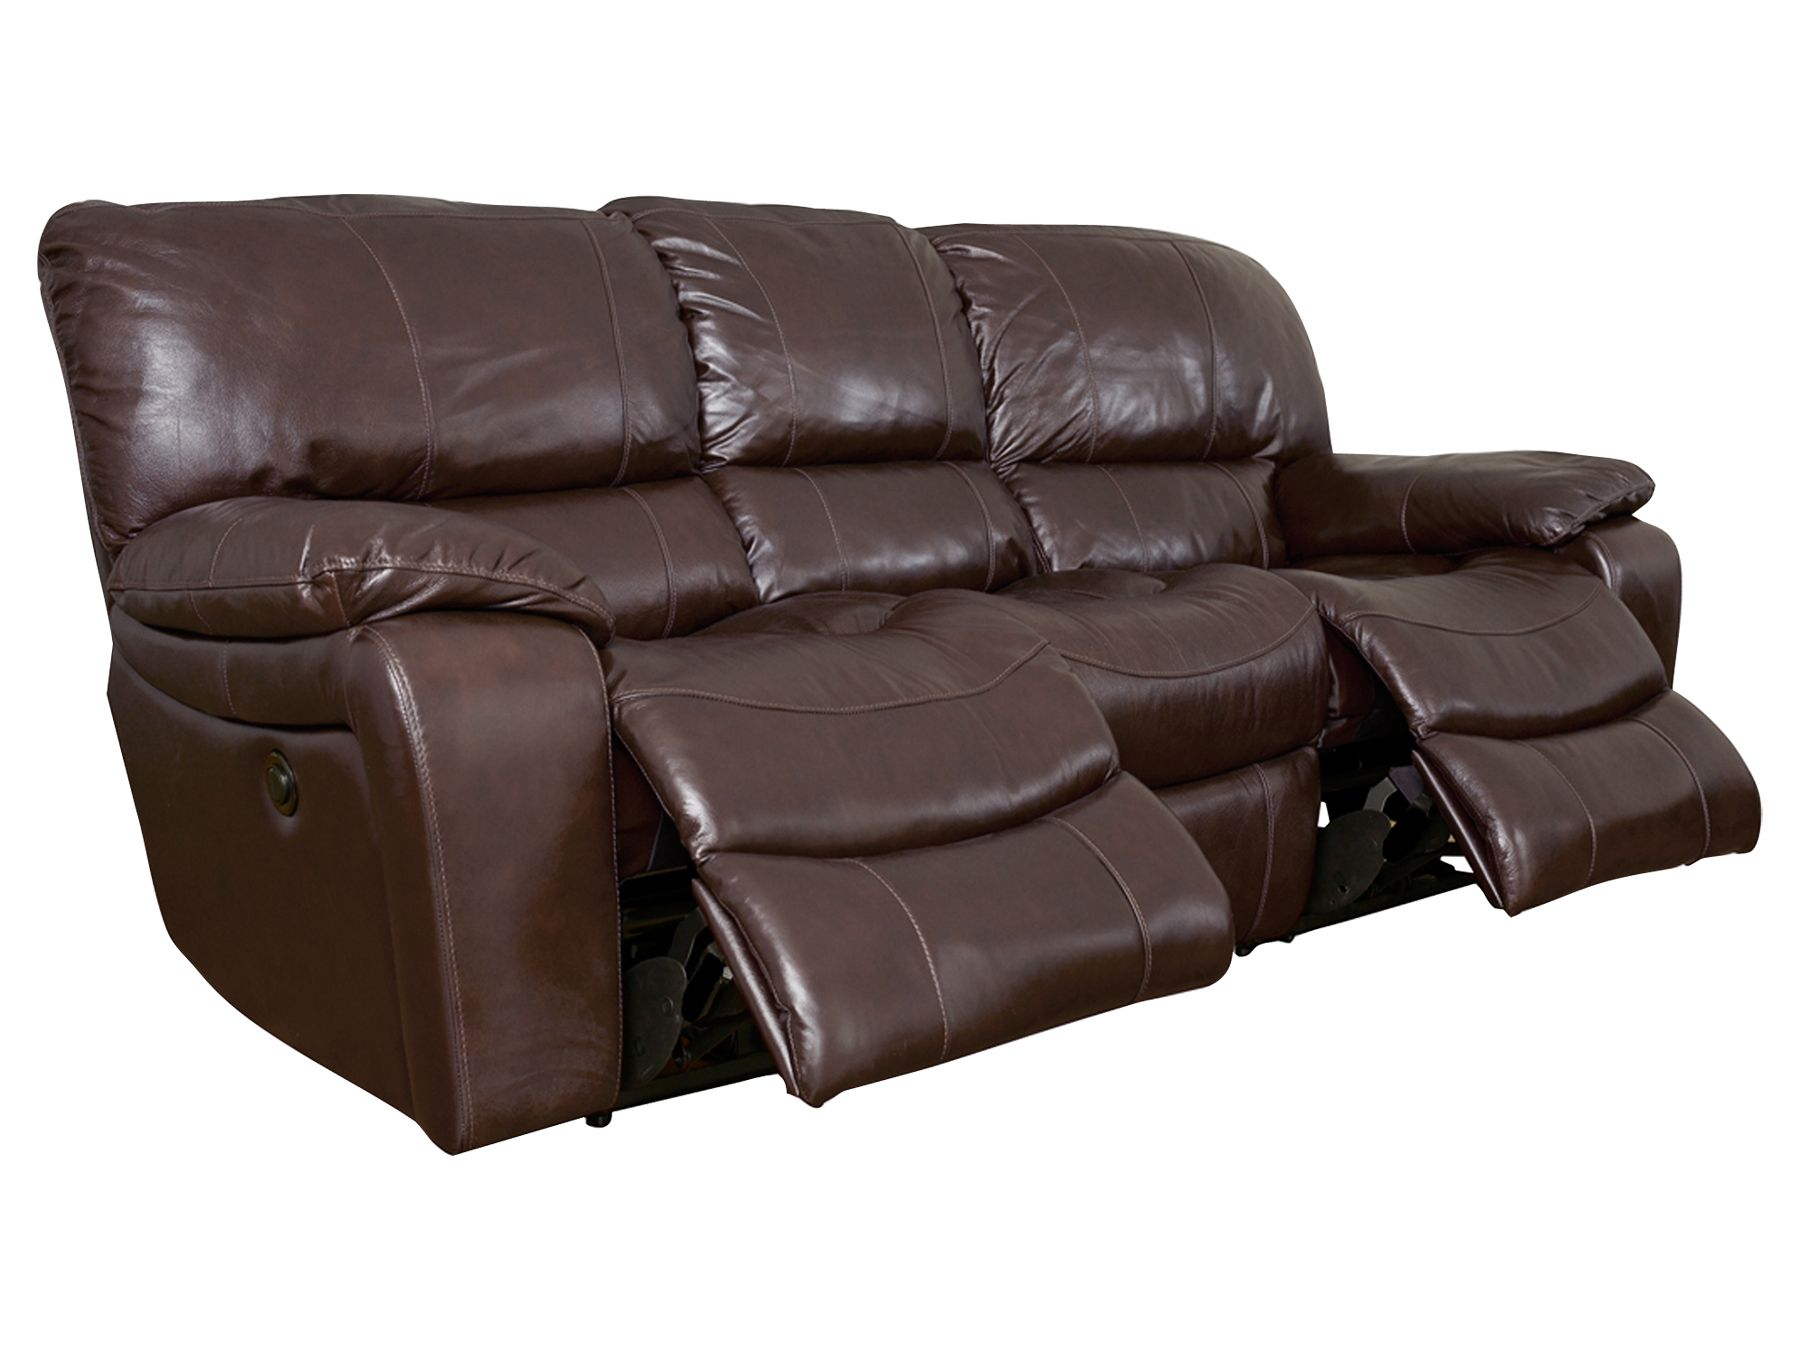 Brown Leather sofa | 3 seater Recliner Leather sofa | Sofa ...